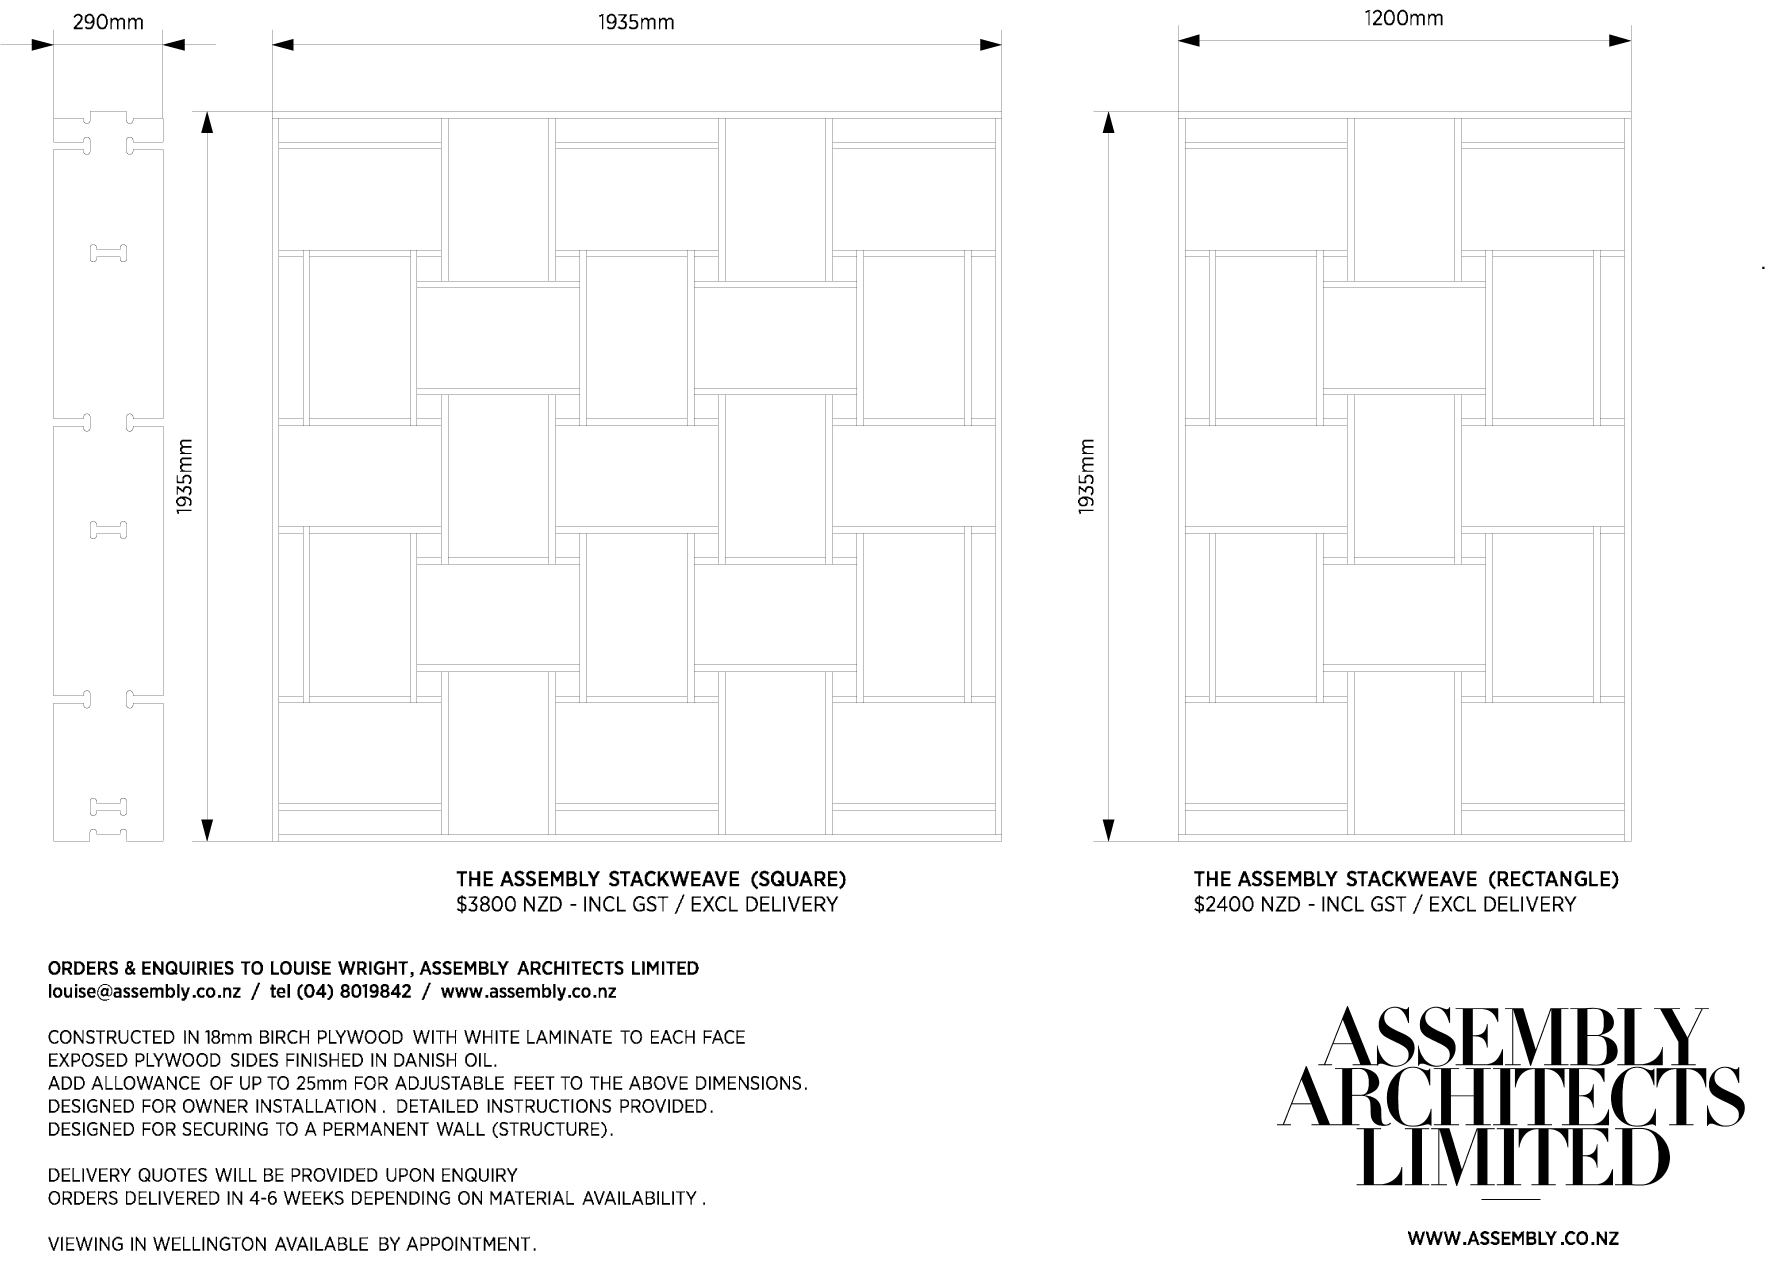 4 dimensions price assembly architects limited